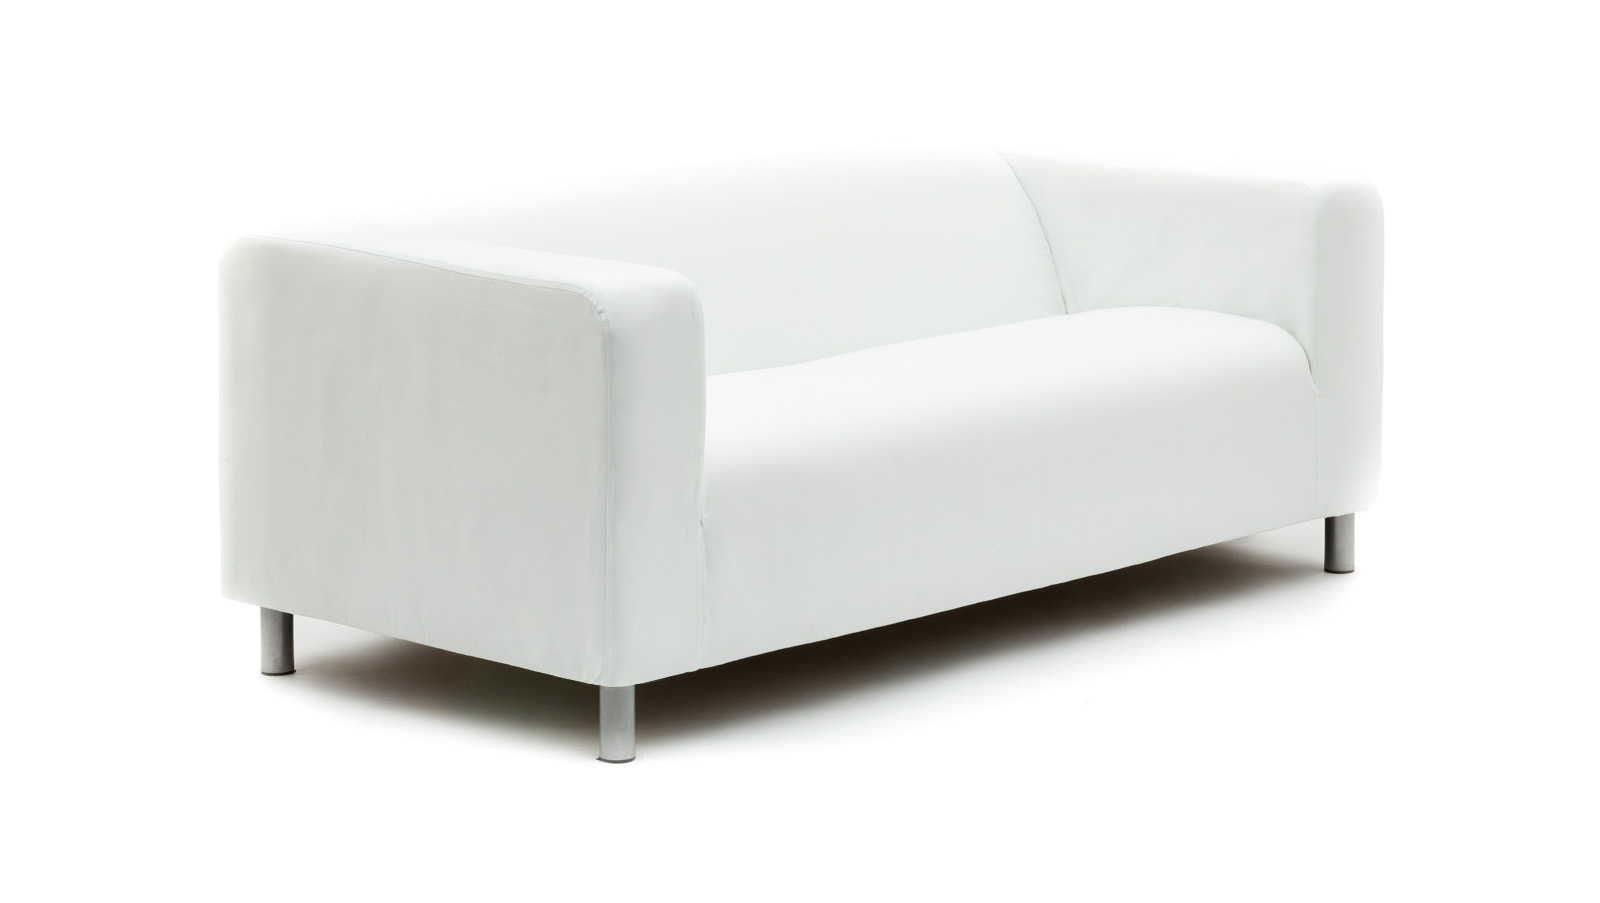 Sofa Slipcover Patterns Free Dy Markers - Ikea Klippan Sofa Cover | Artefly.com